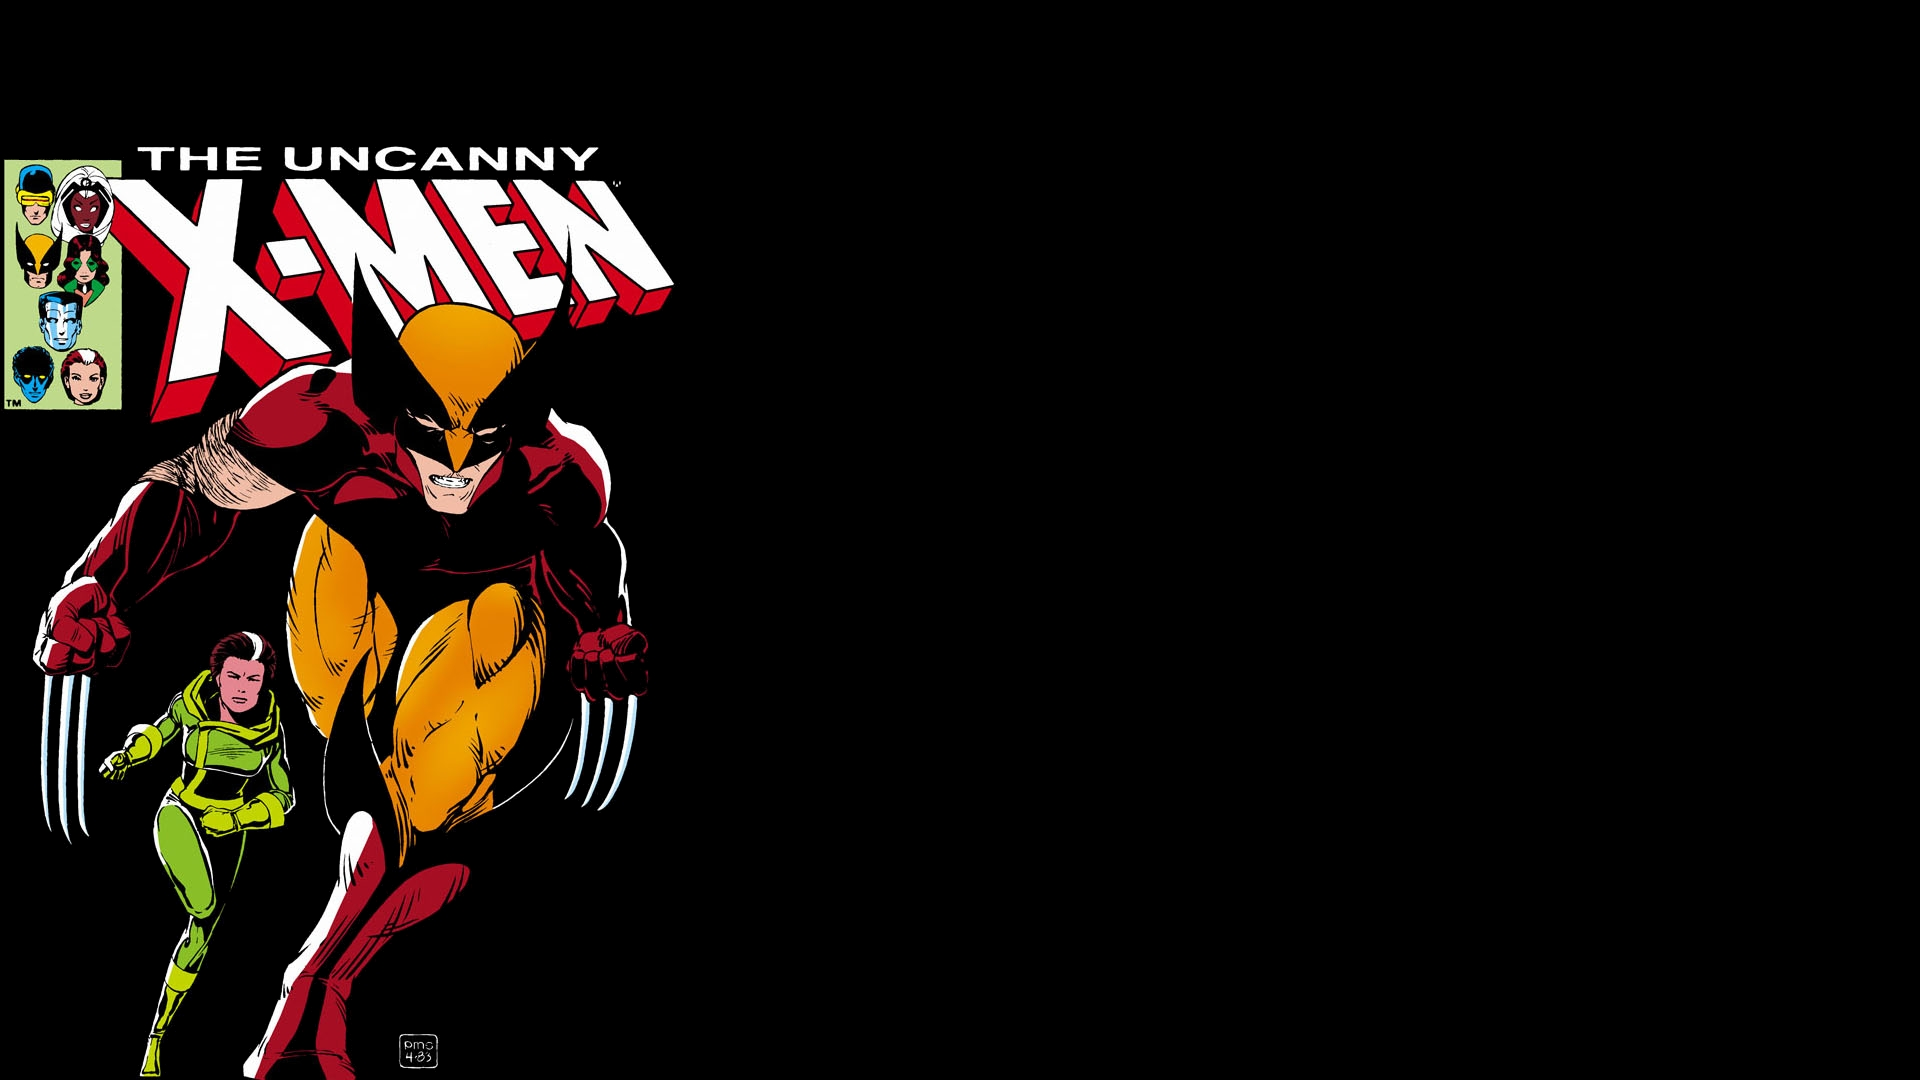 Uncanny X-Men Computer Wallpaper, Desktop Background